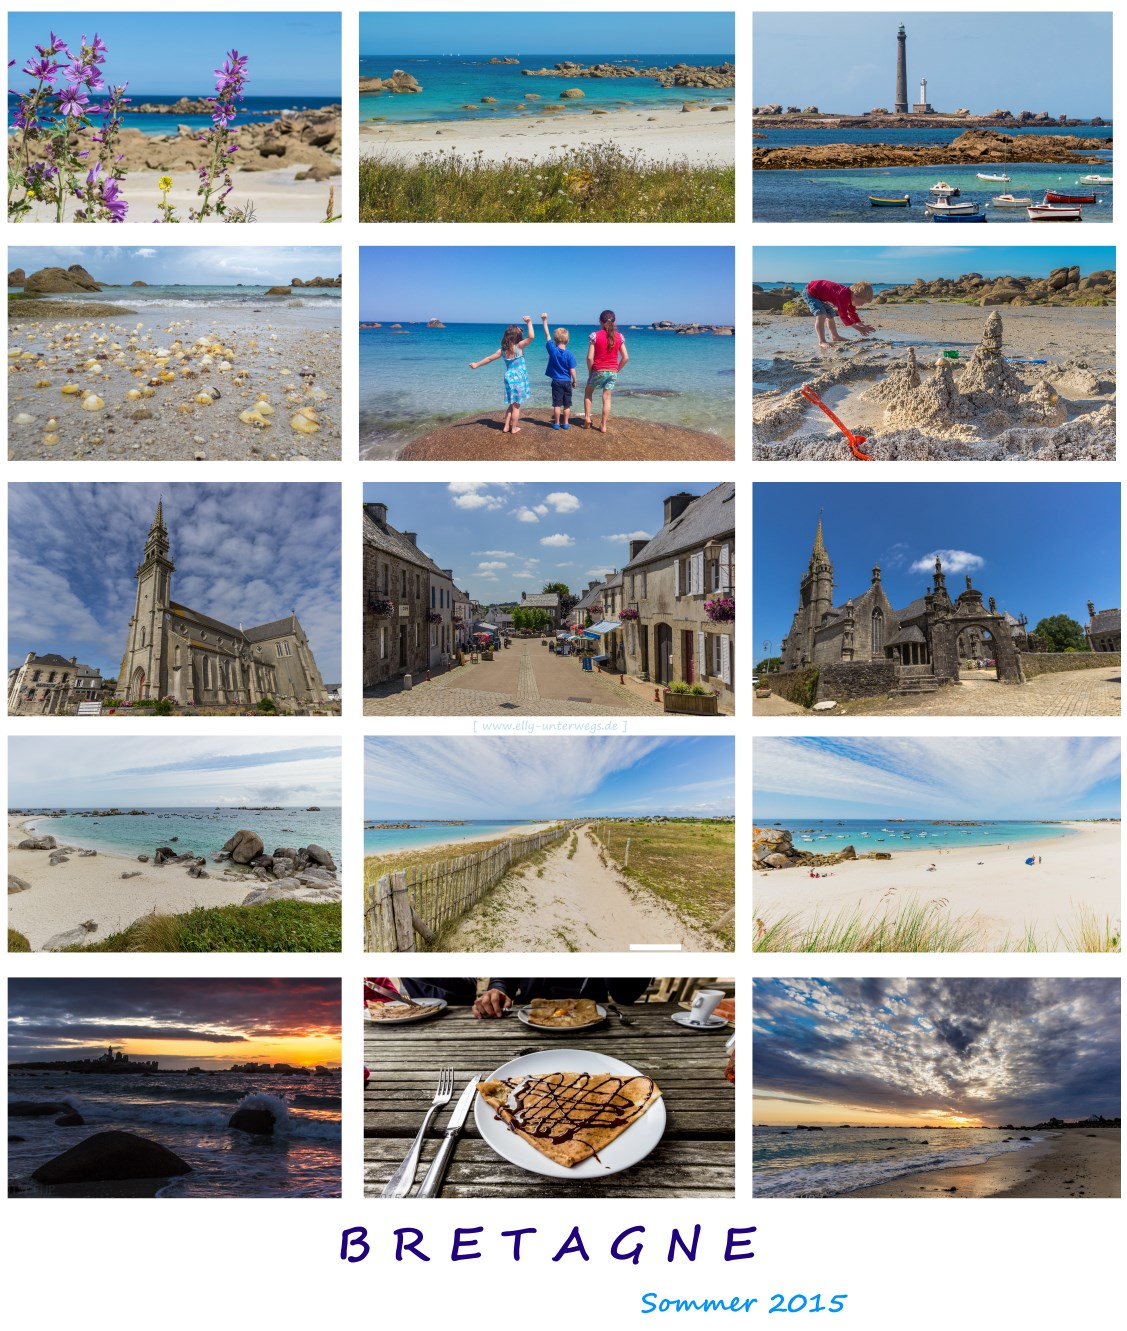 Bretagne collage-BLOG